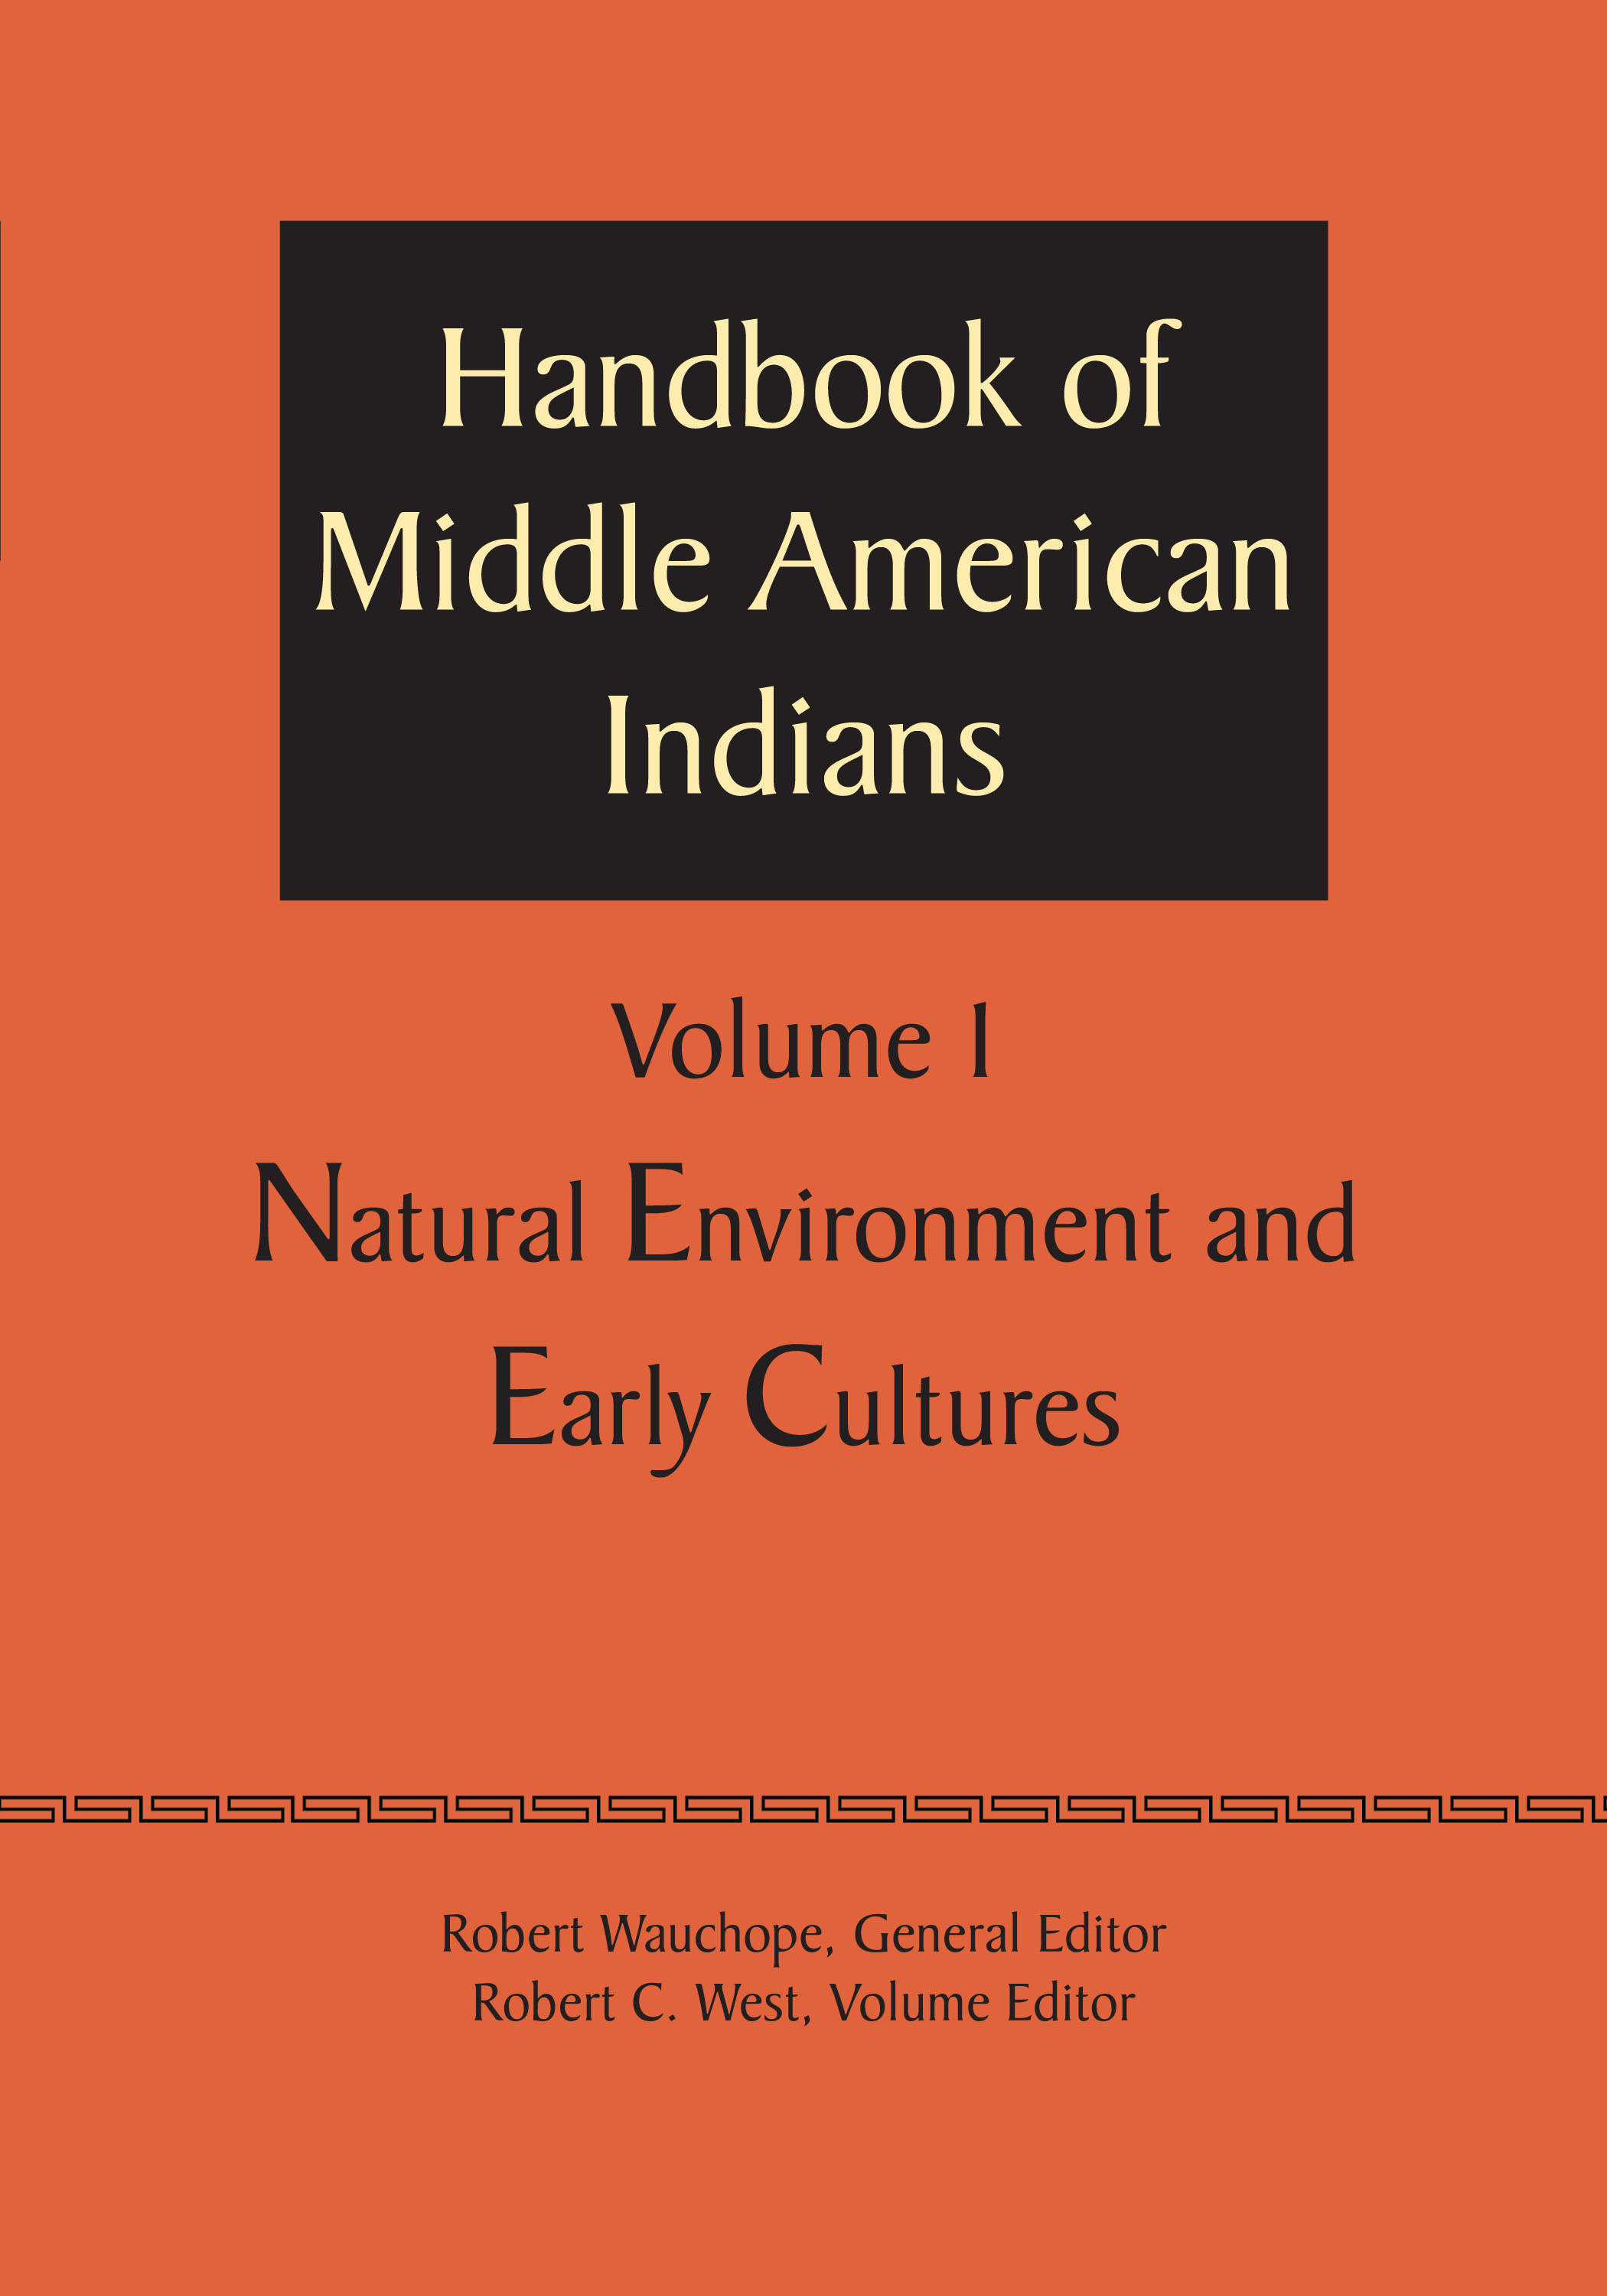 Cover of Handbook of Middle American Indians, Volume 1